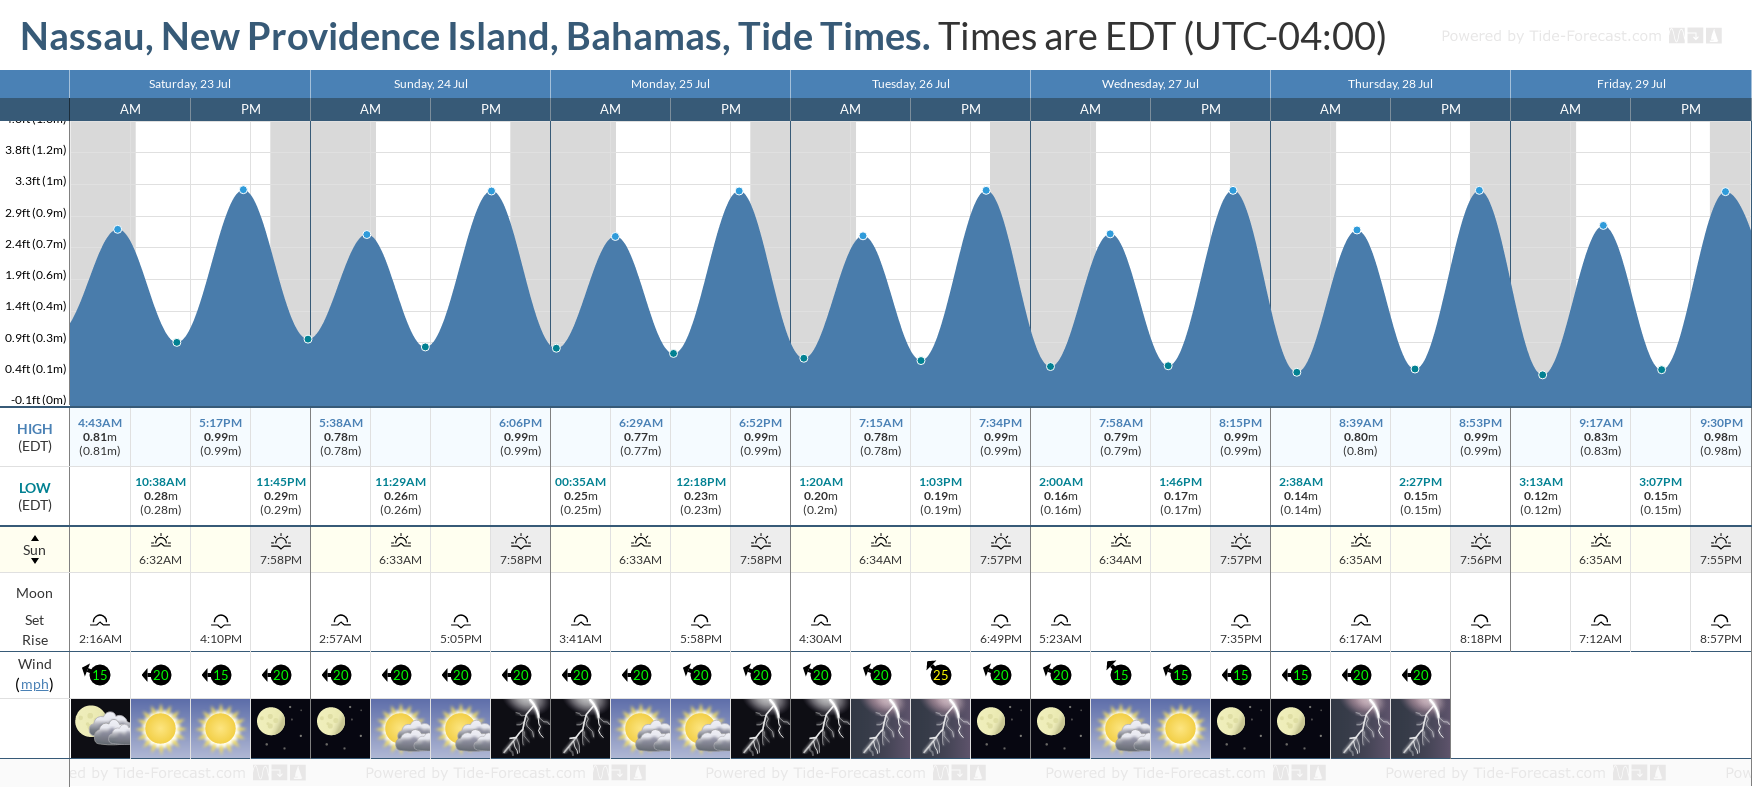 Nassau, New Providence Island, Bahamas Tide Chart including high and low tide tide times for the next 7 days